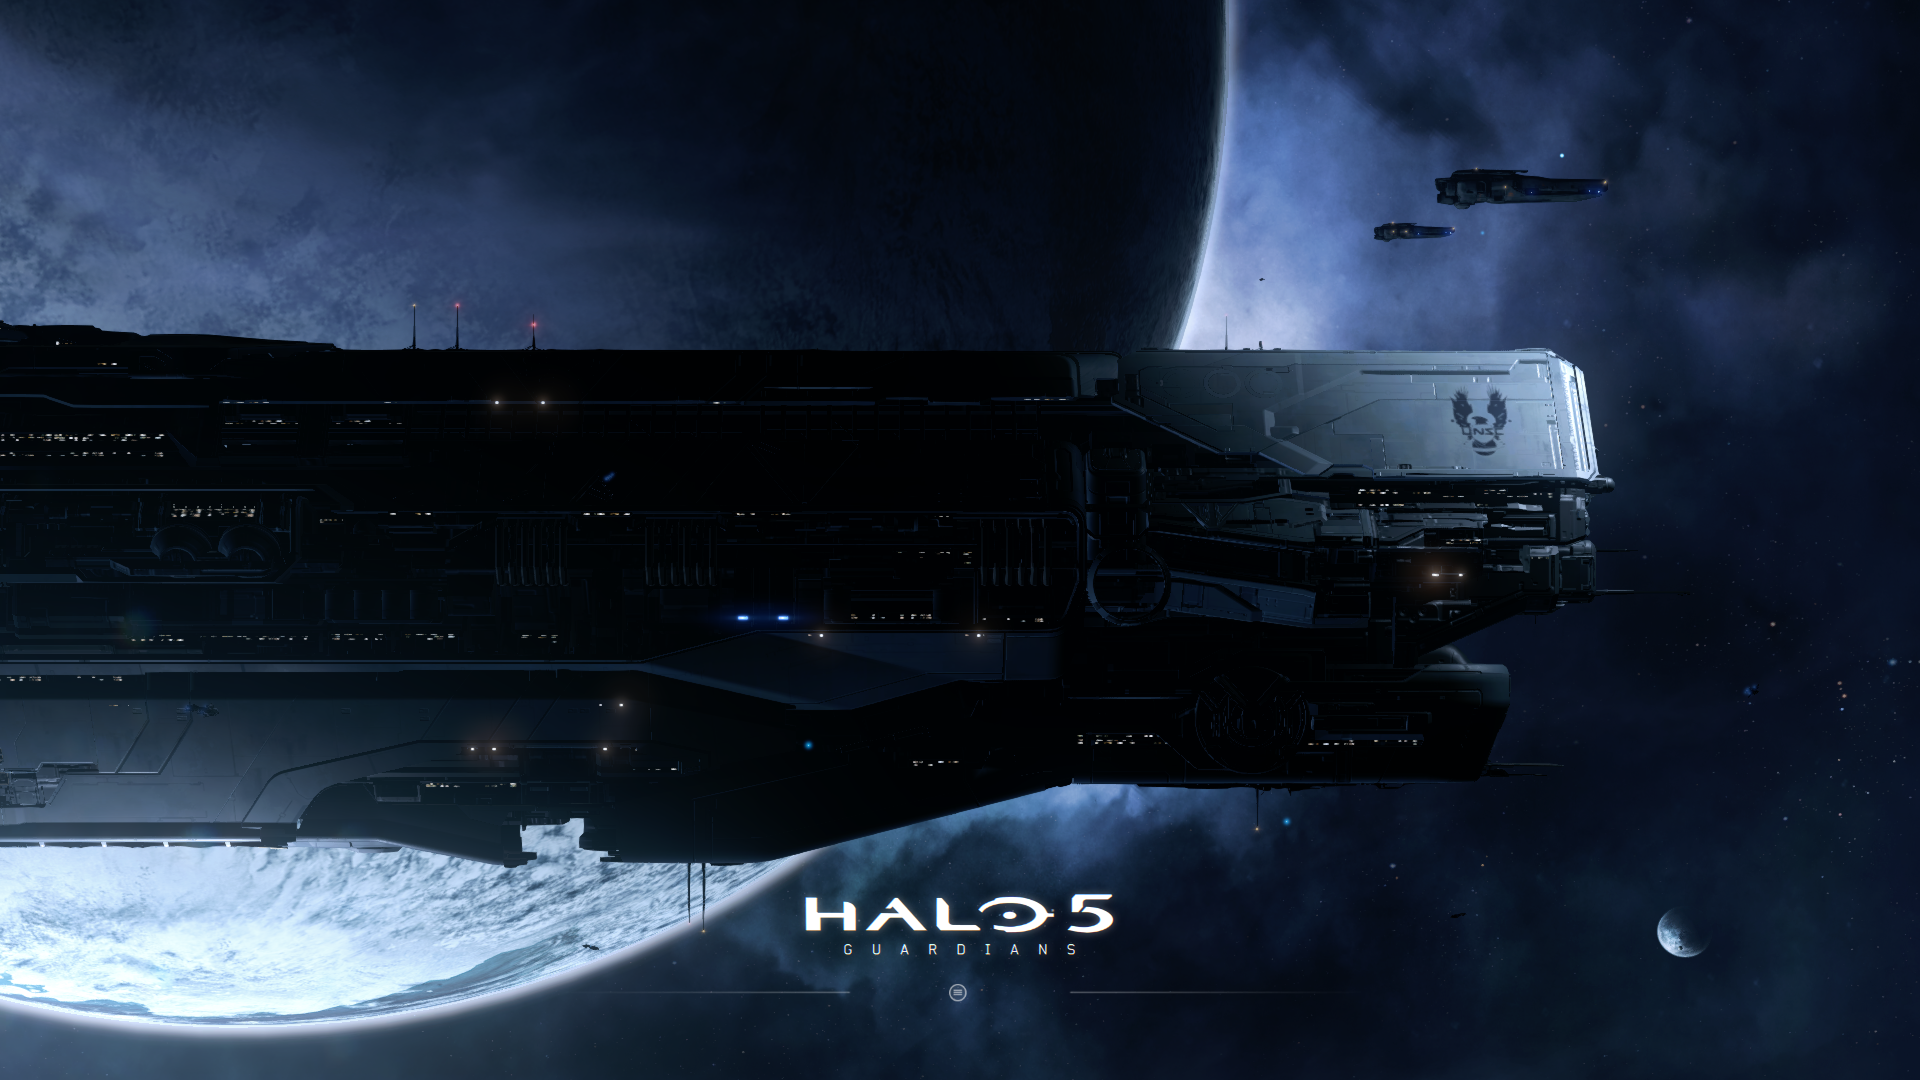 Halo 5: Guardians Xbox One The Halo 5: Guardians loading screen.